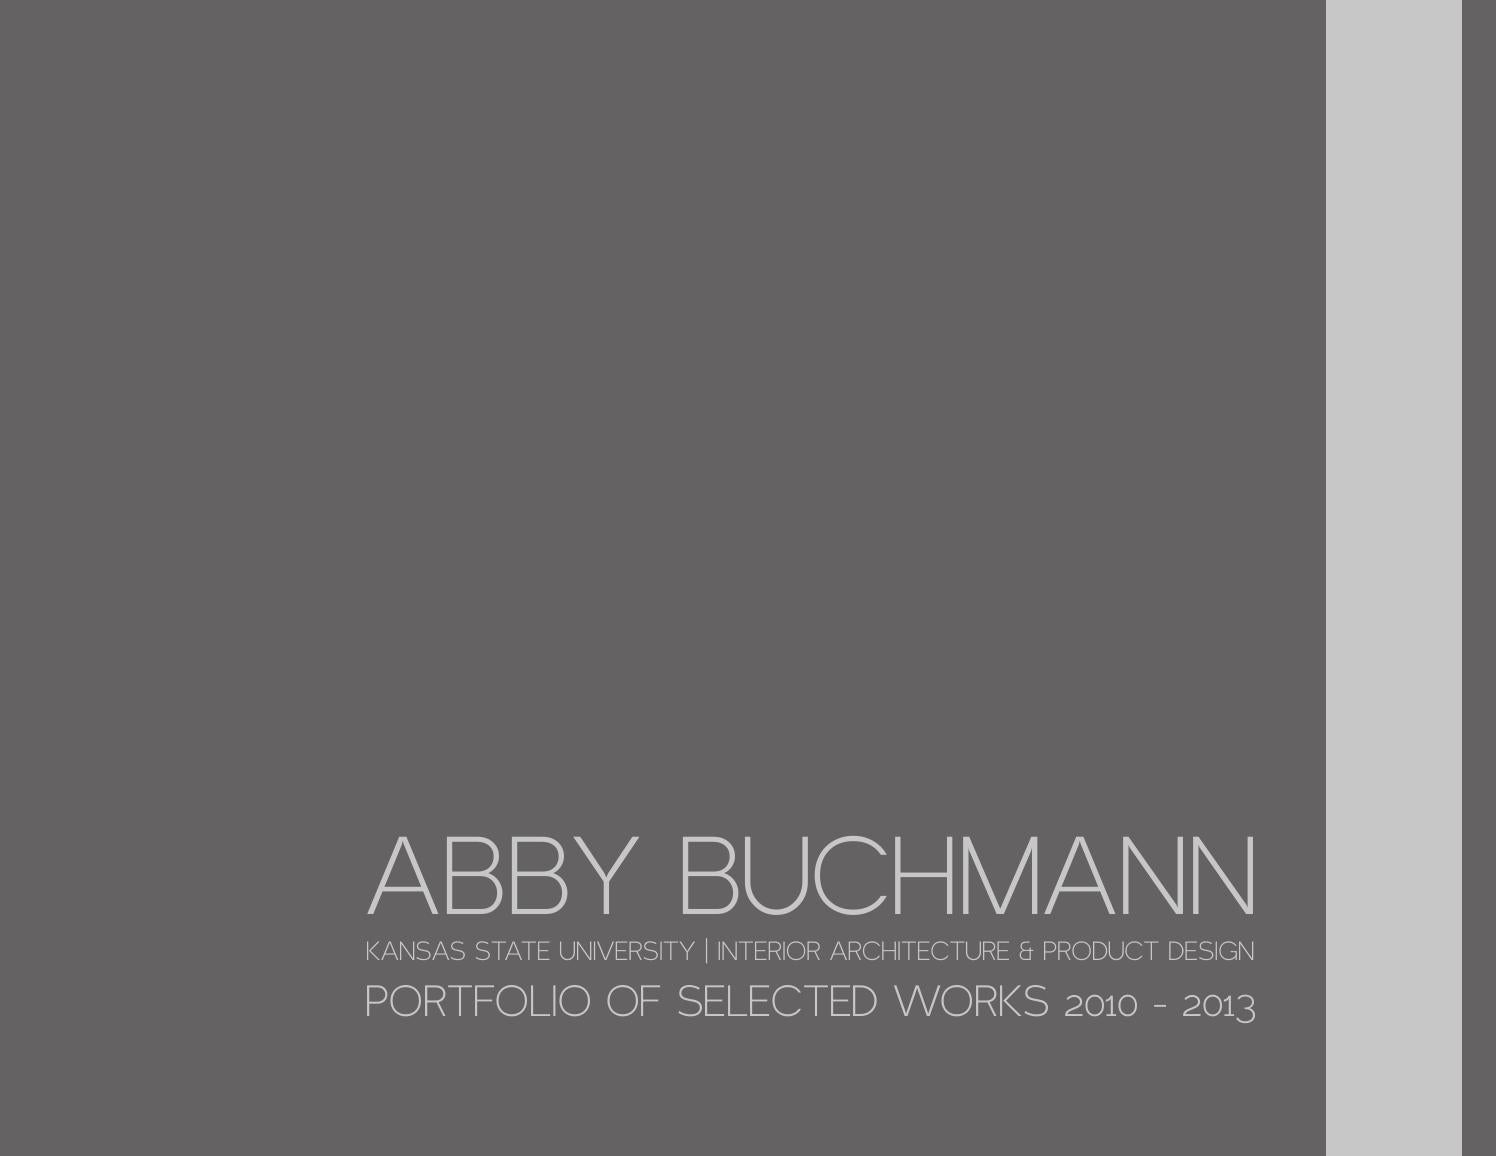 Abby Buchmann Interior Architecture And Product Design Portfolio By Abby Buchmann Issuu